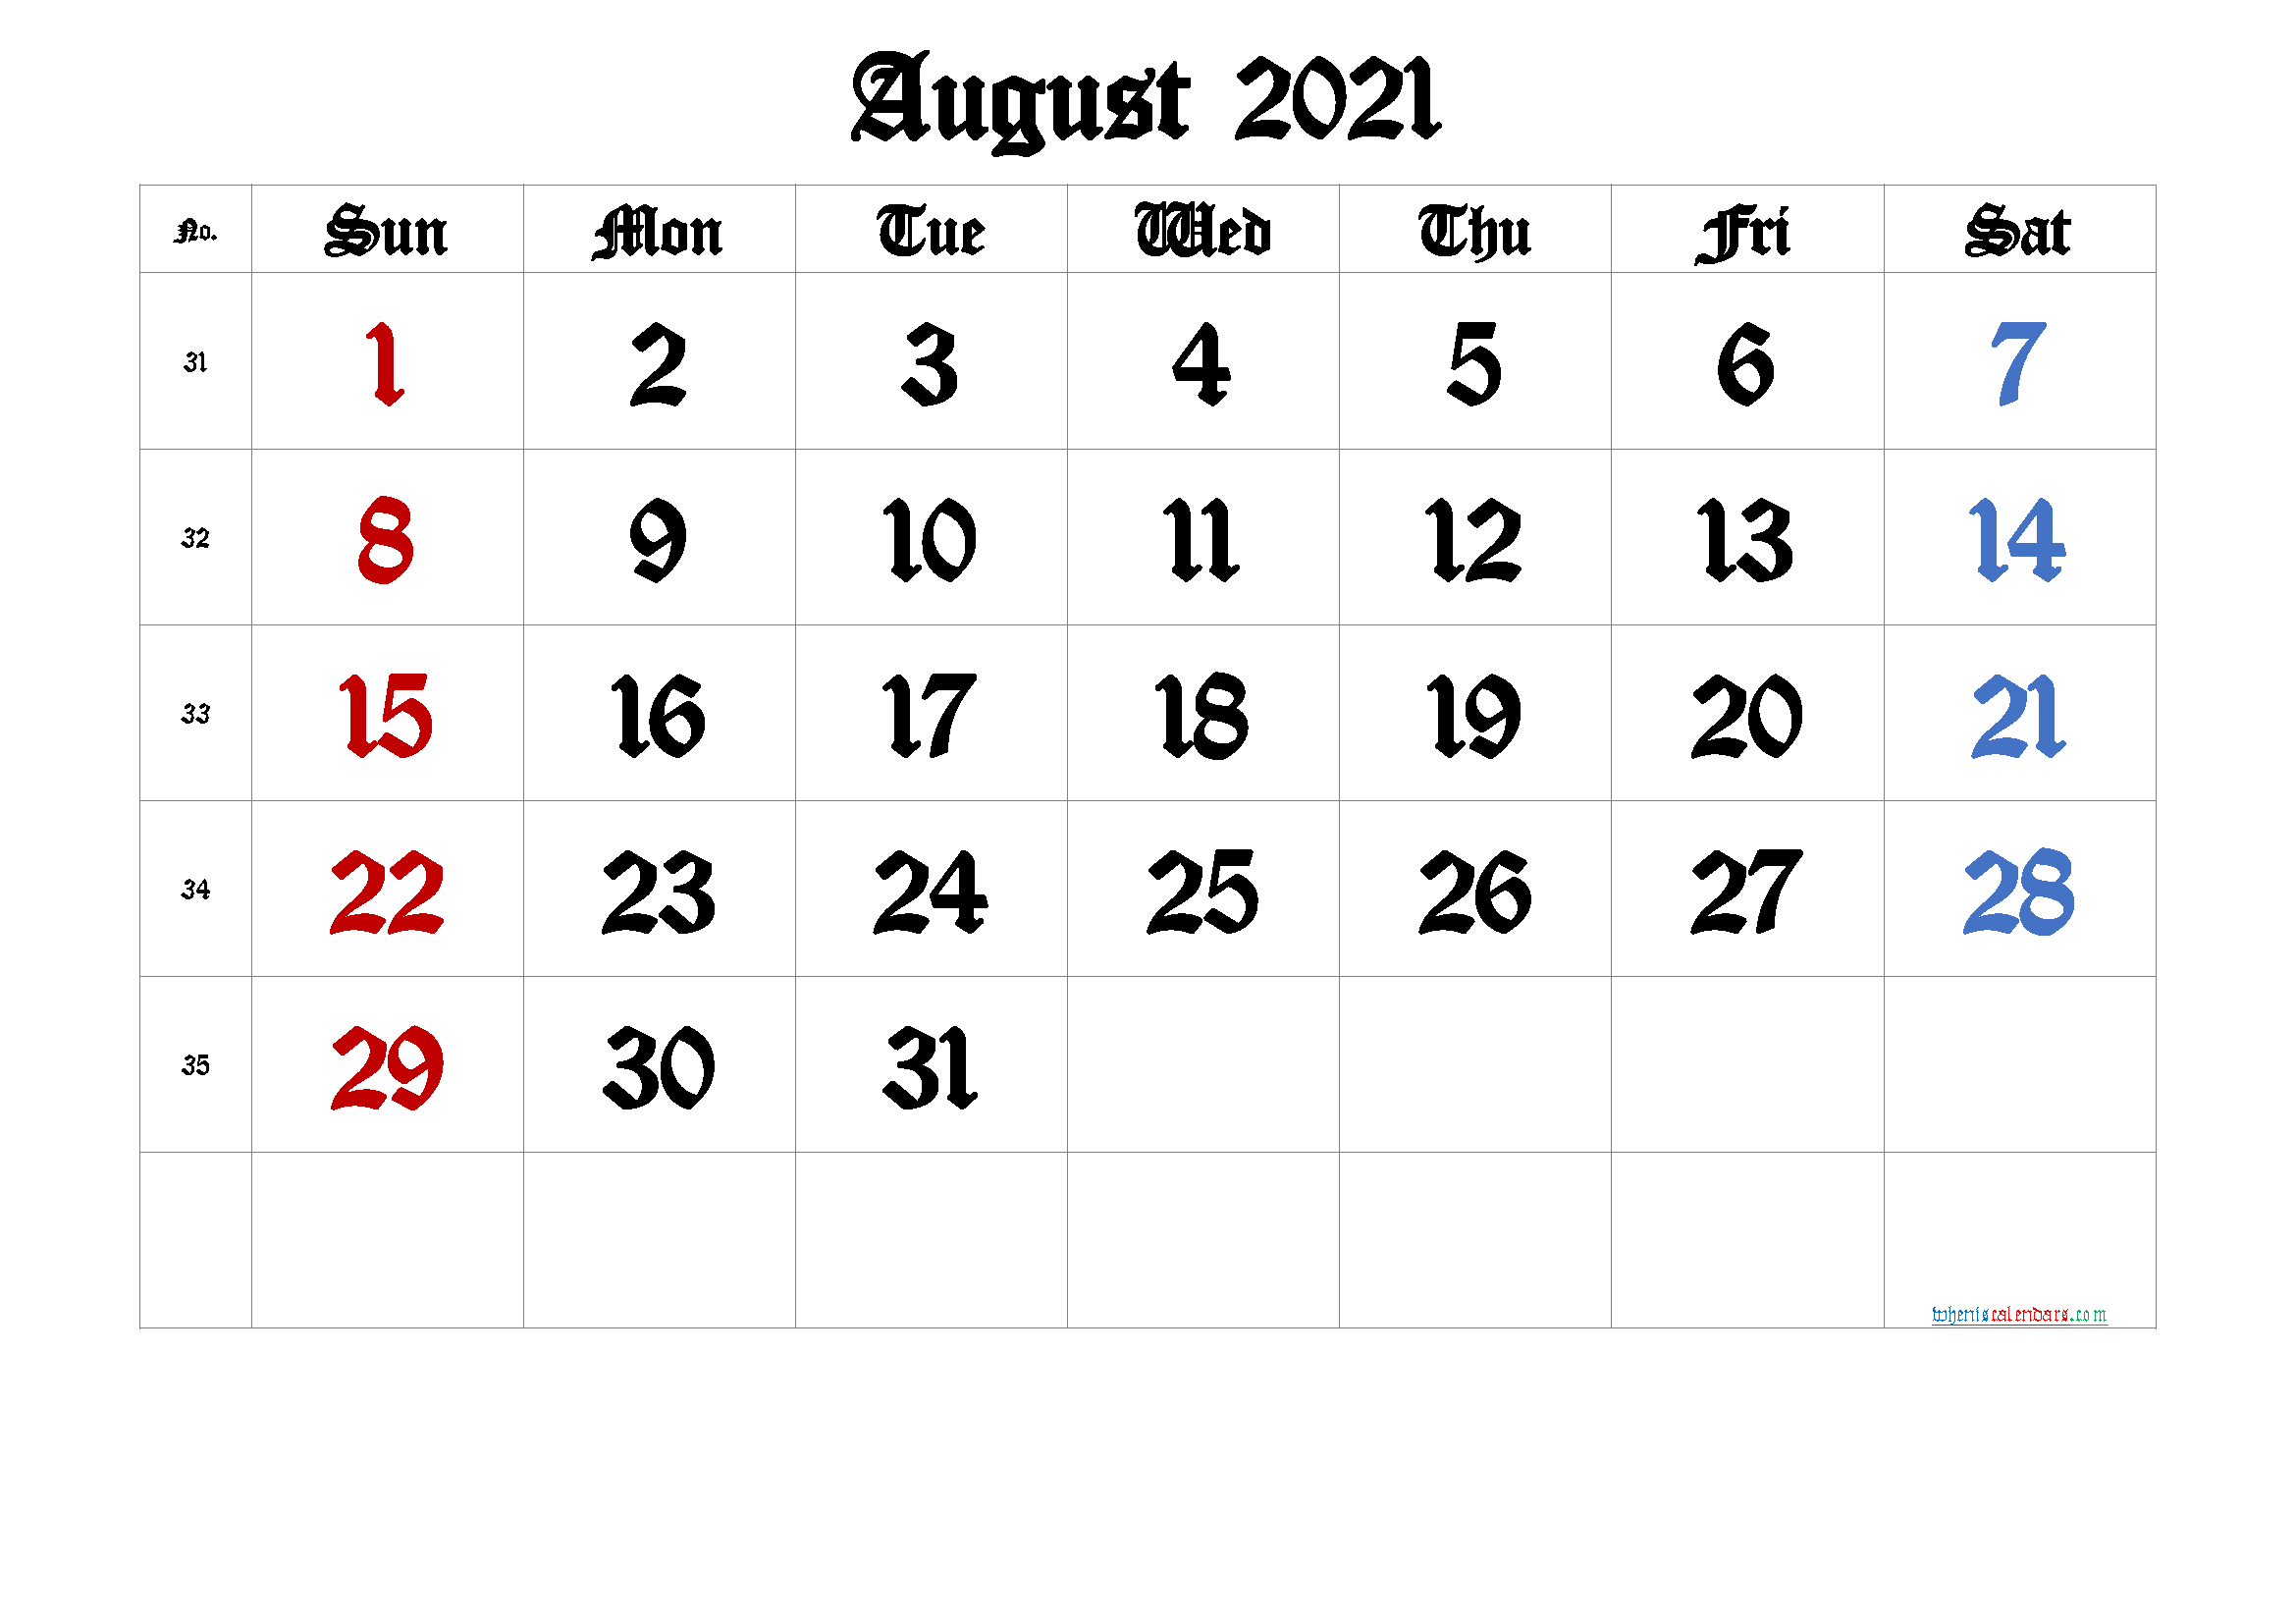 August 2021 Printable Calendar with Week Numbers